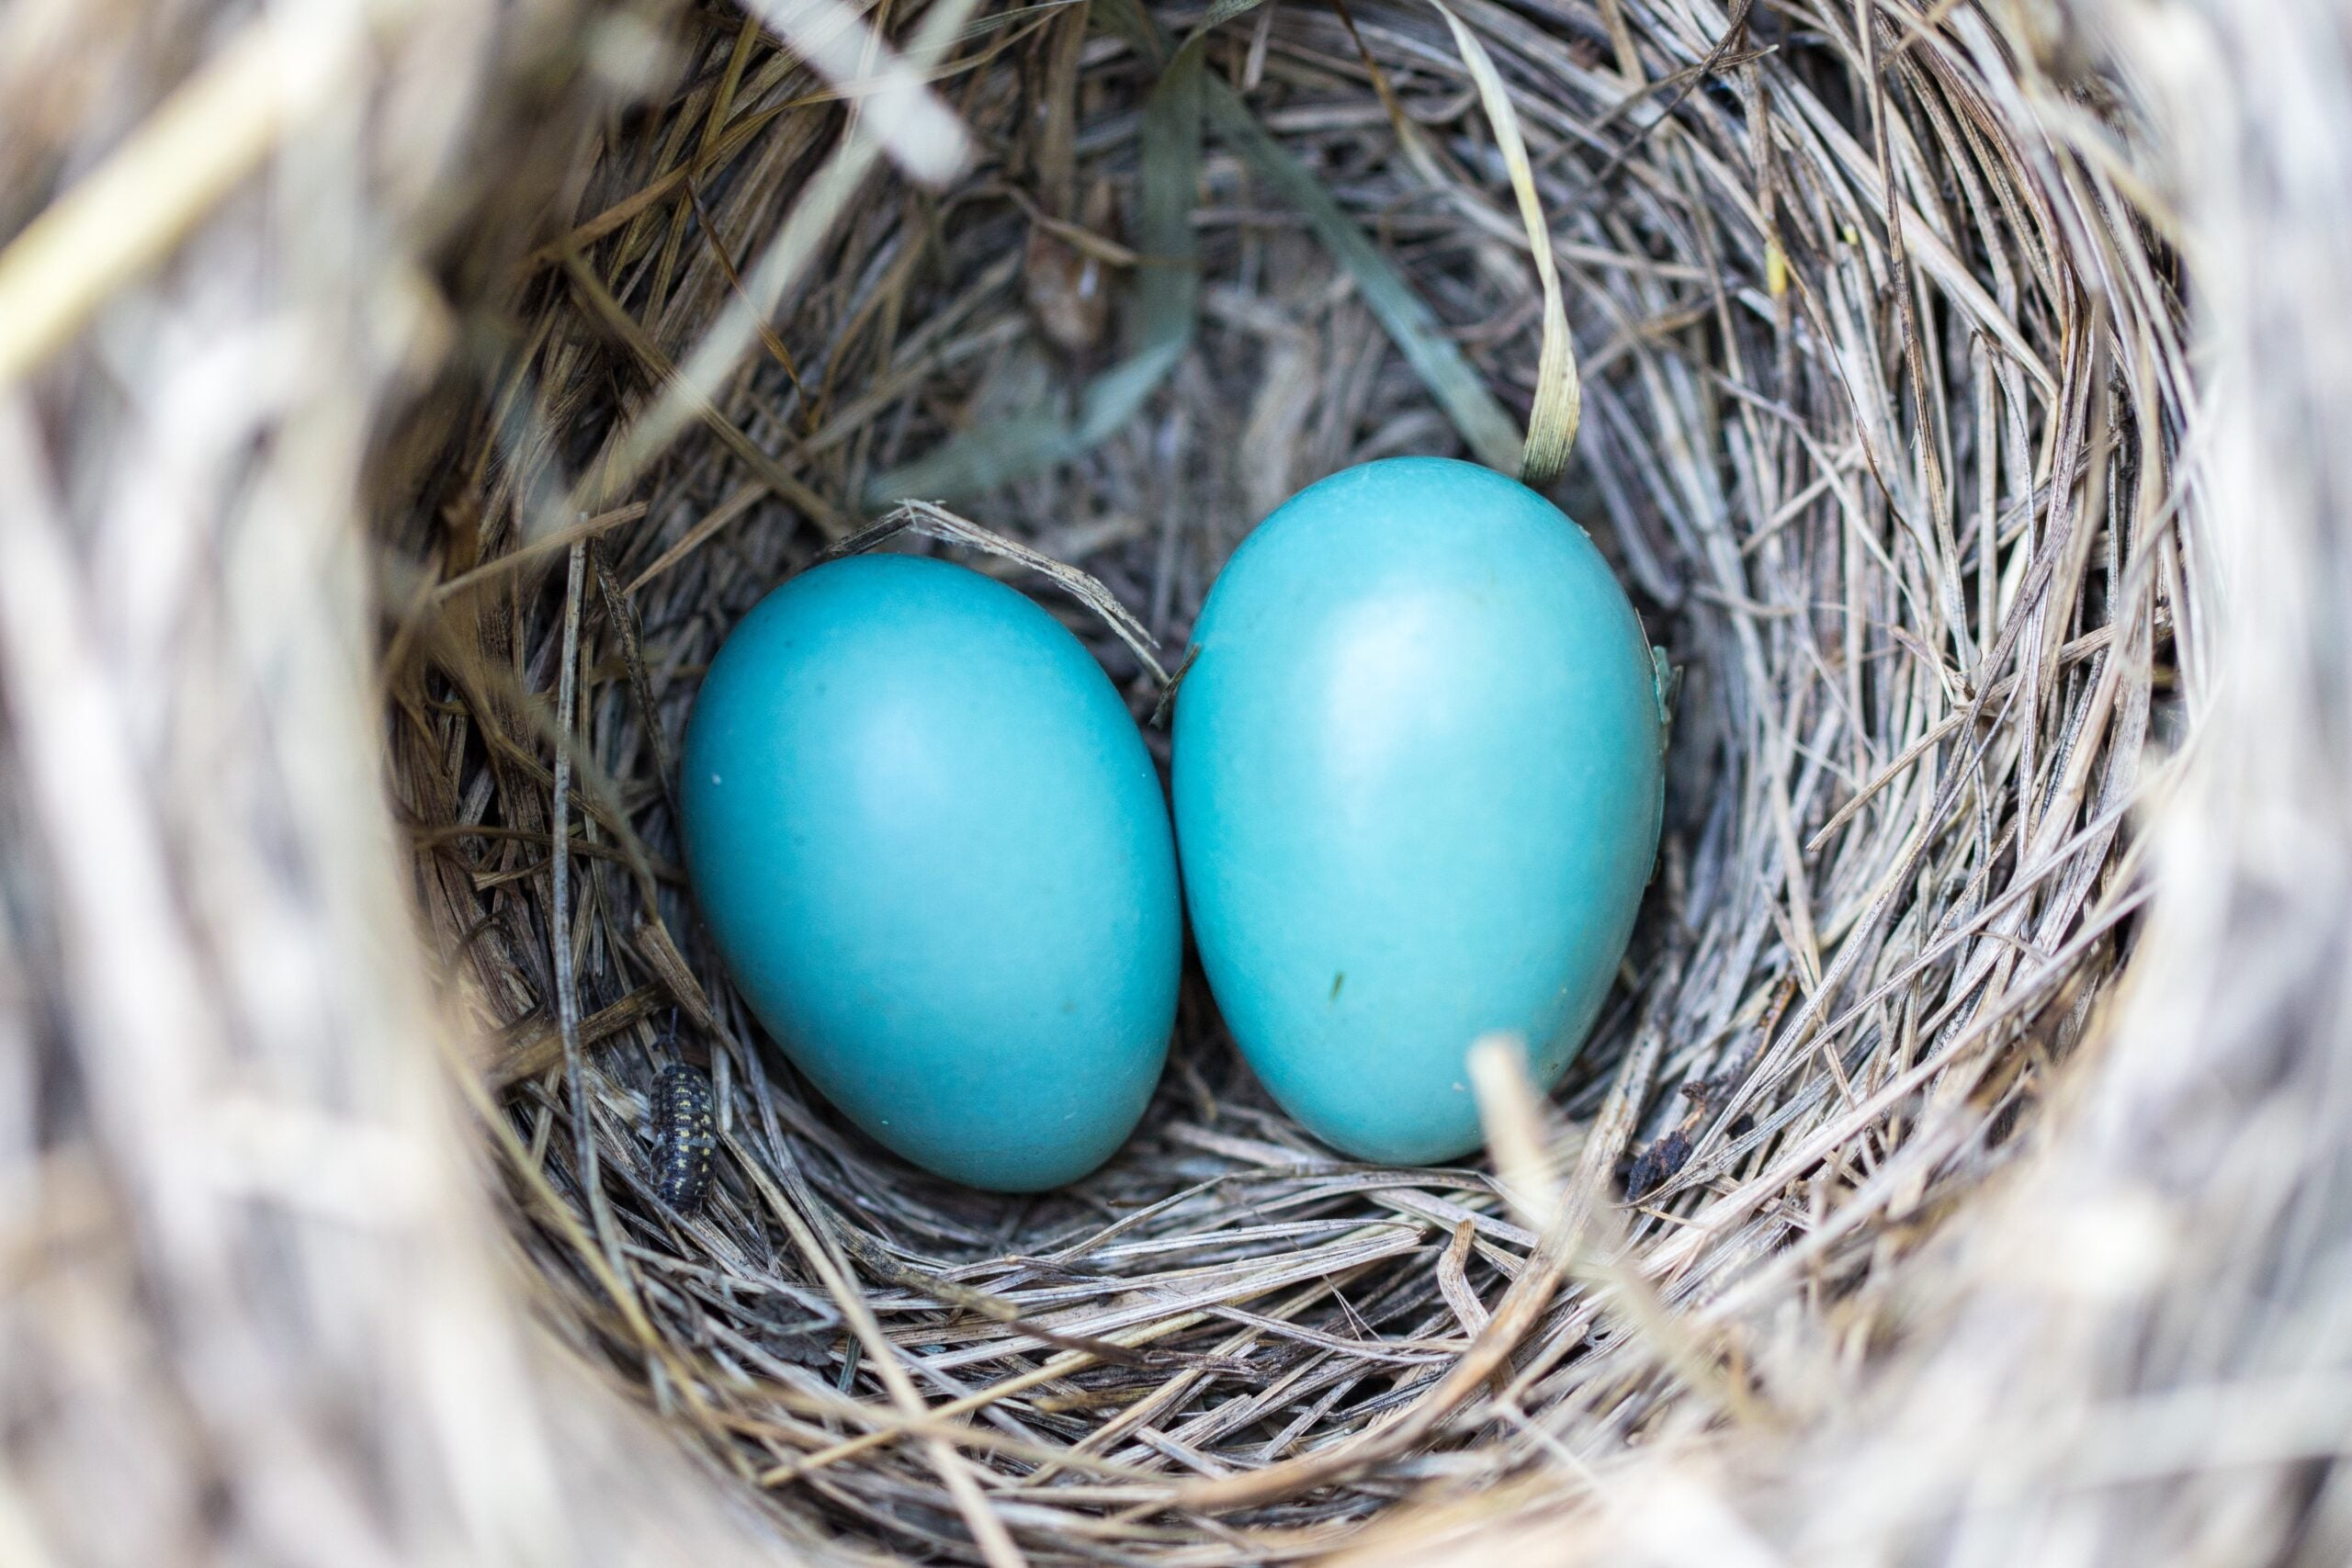 Birds' ability to fly could determine the shape of their eggs